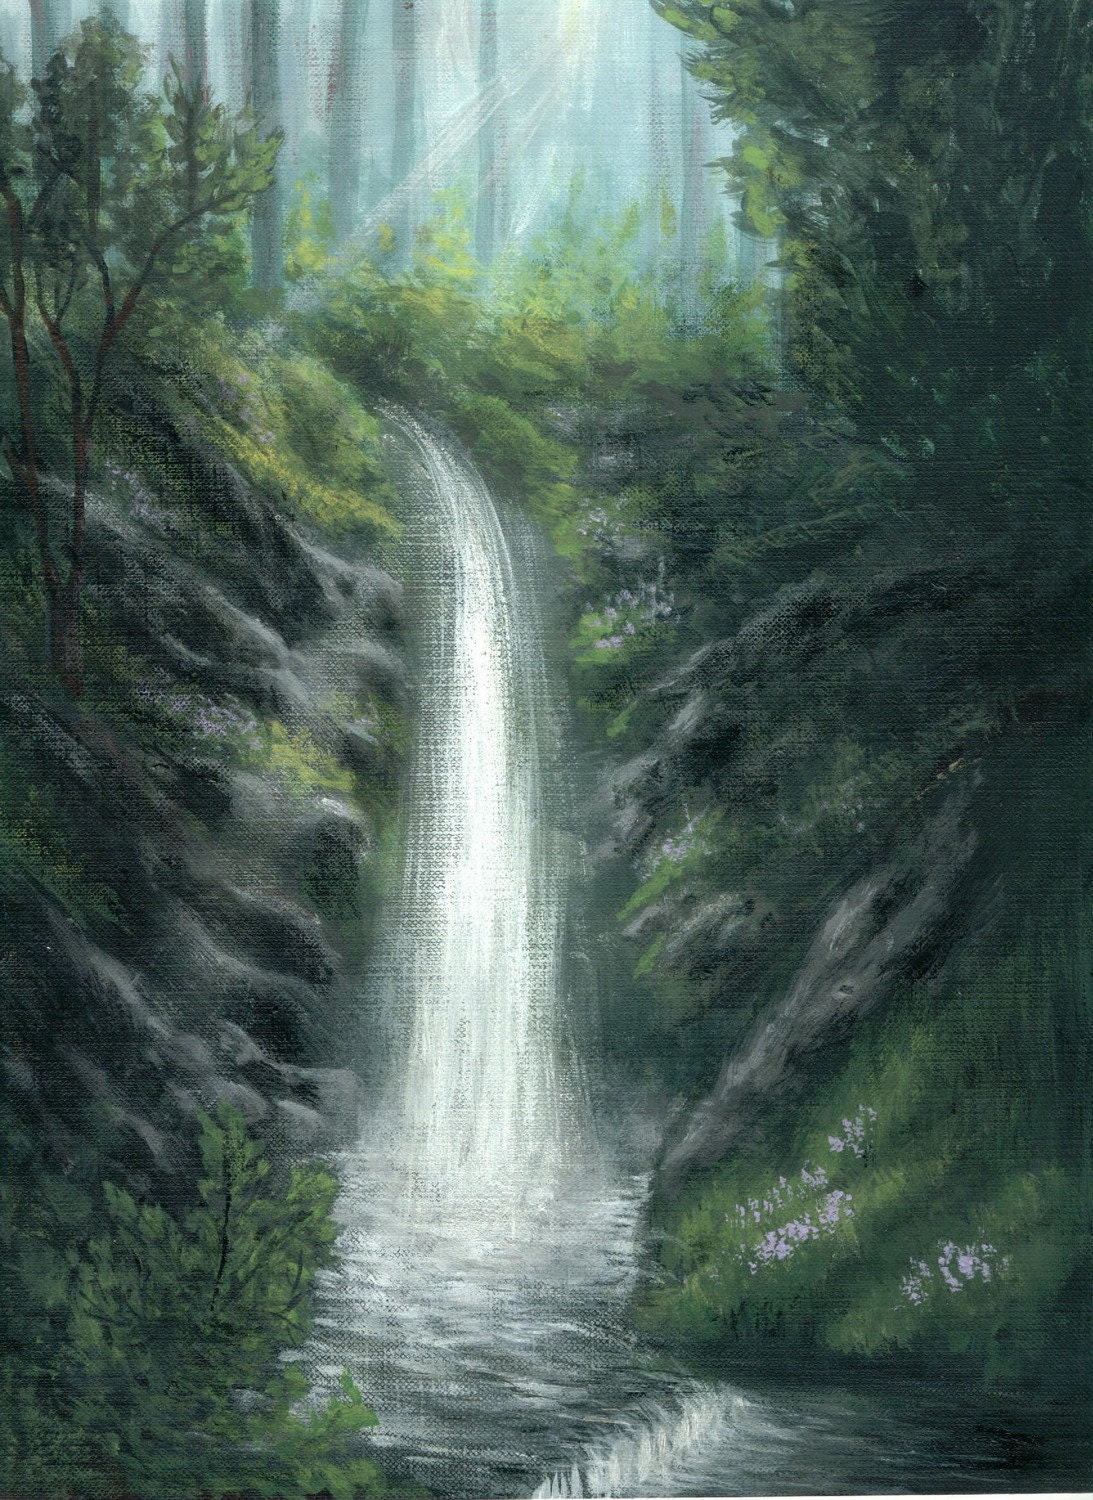 Woodland Magic, Waterfall painting, ethereal, a print of an original acrylic painting to fit 8x10 frame - ArtworkByErinn